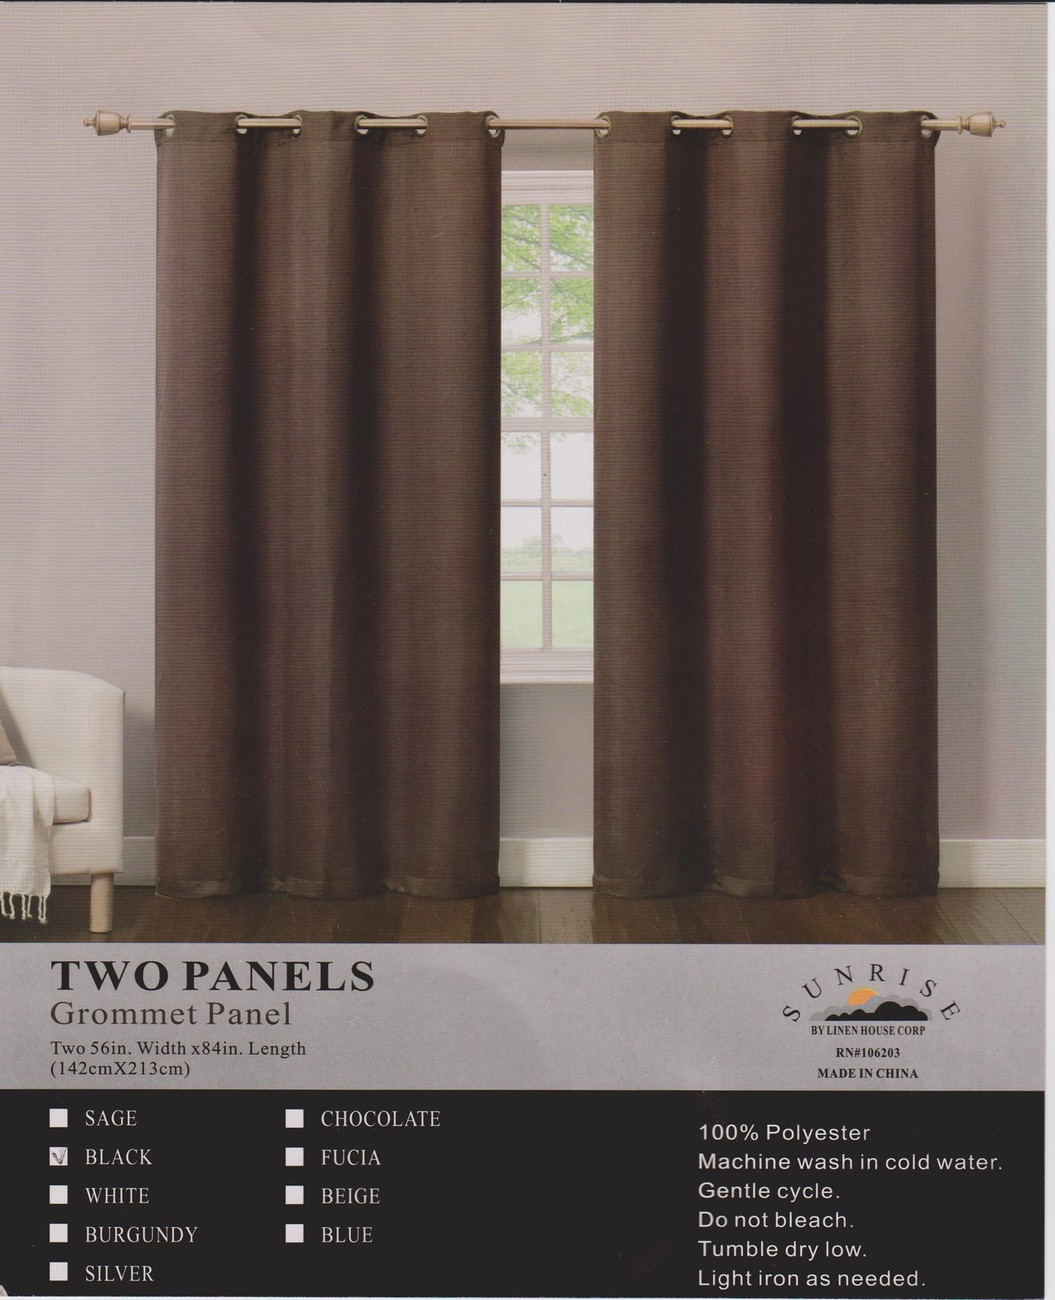 New Elegant Metal Grommets 2 Panels Curtain/Drape Set Solid Black 100% Polyester